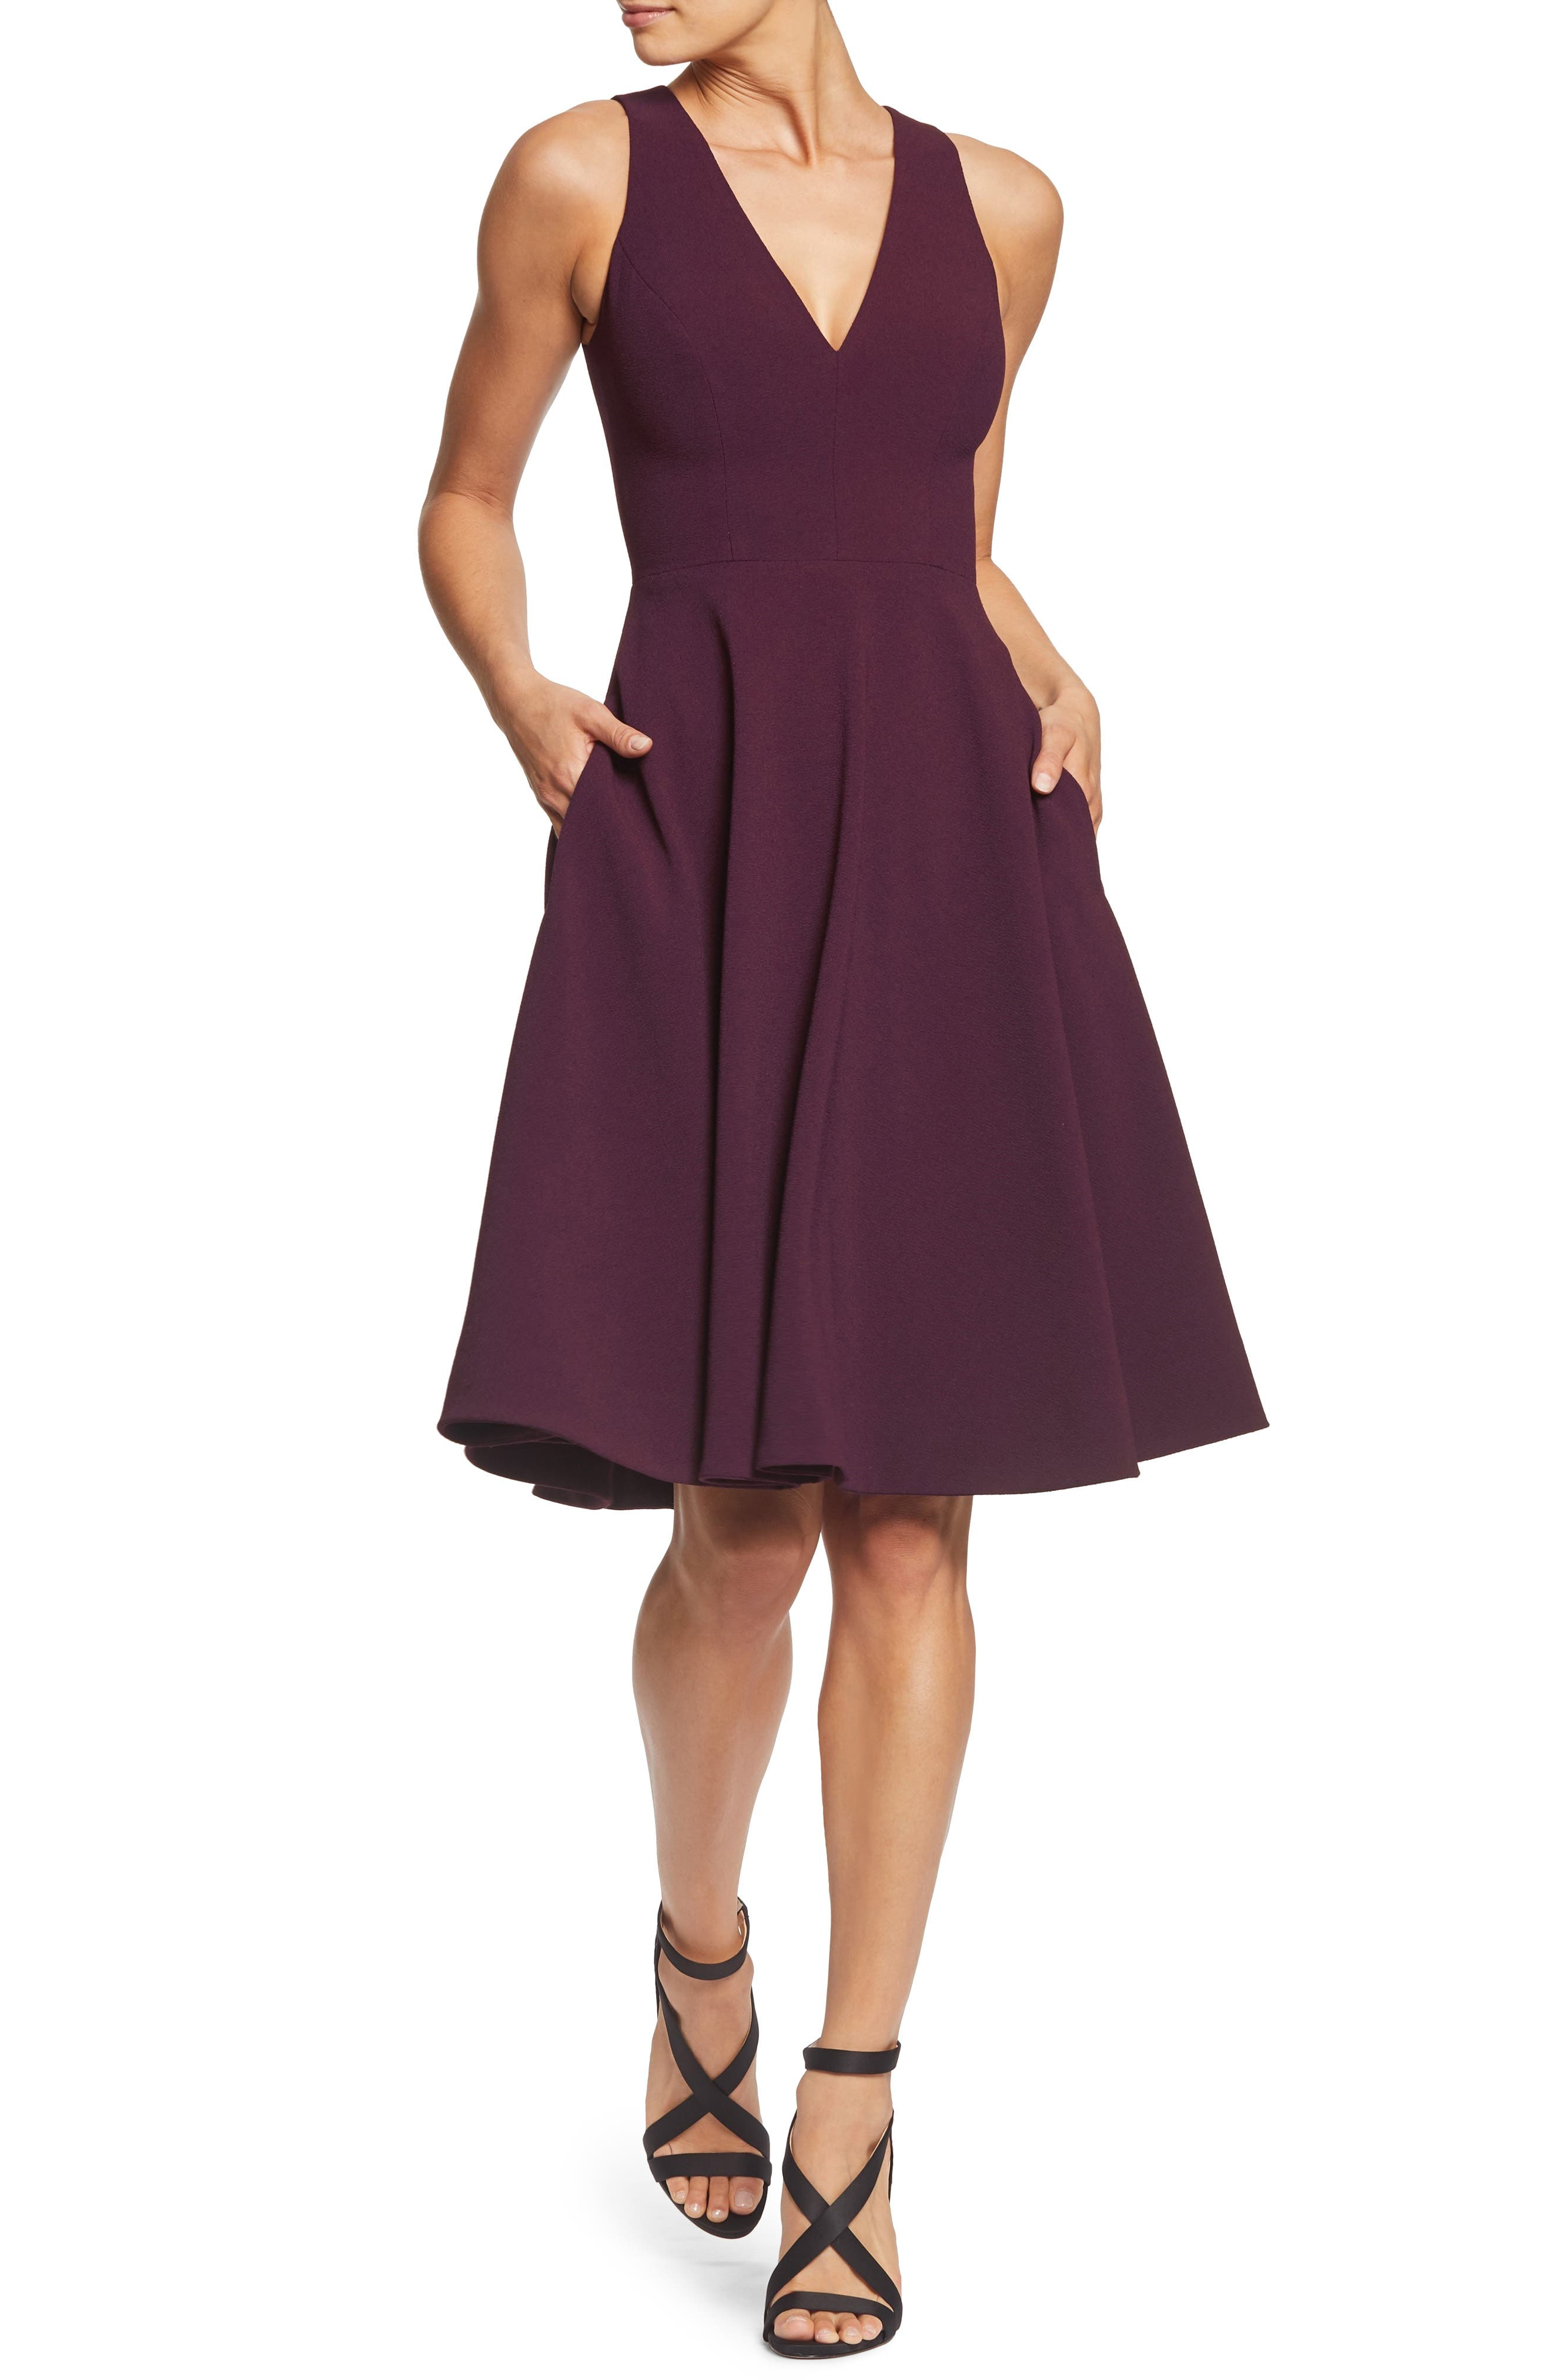 DRESS THE POPULATION, Catalina Tea Length Fit & Flare Dress, Main thumbnail 1, color, PLUM